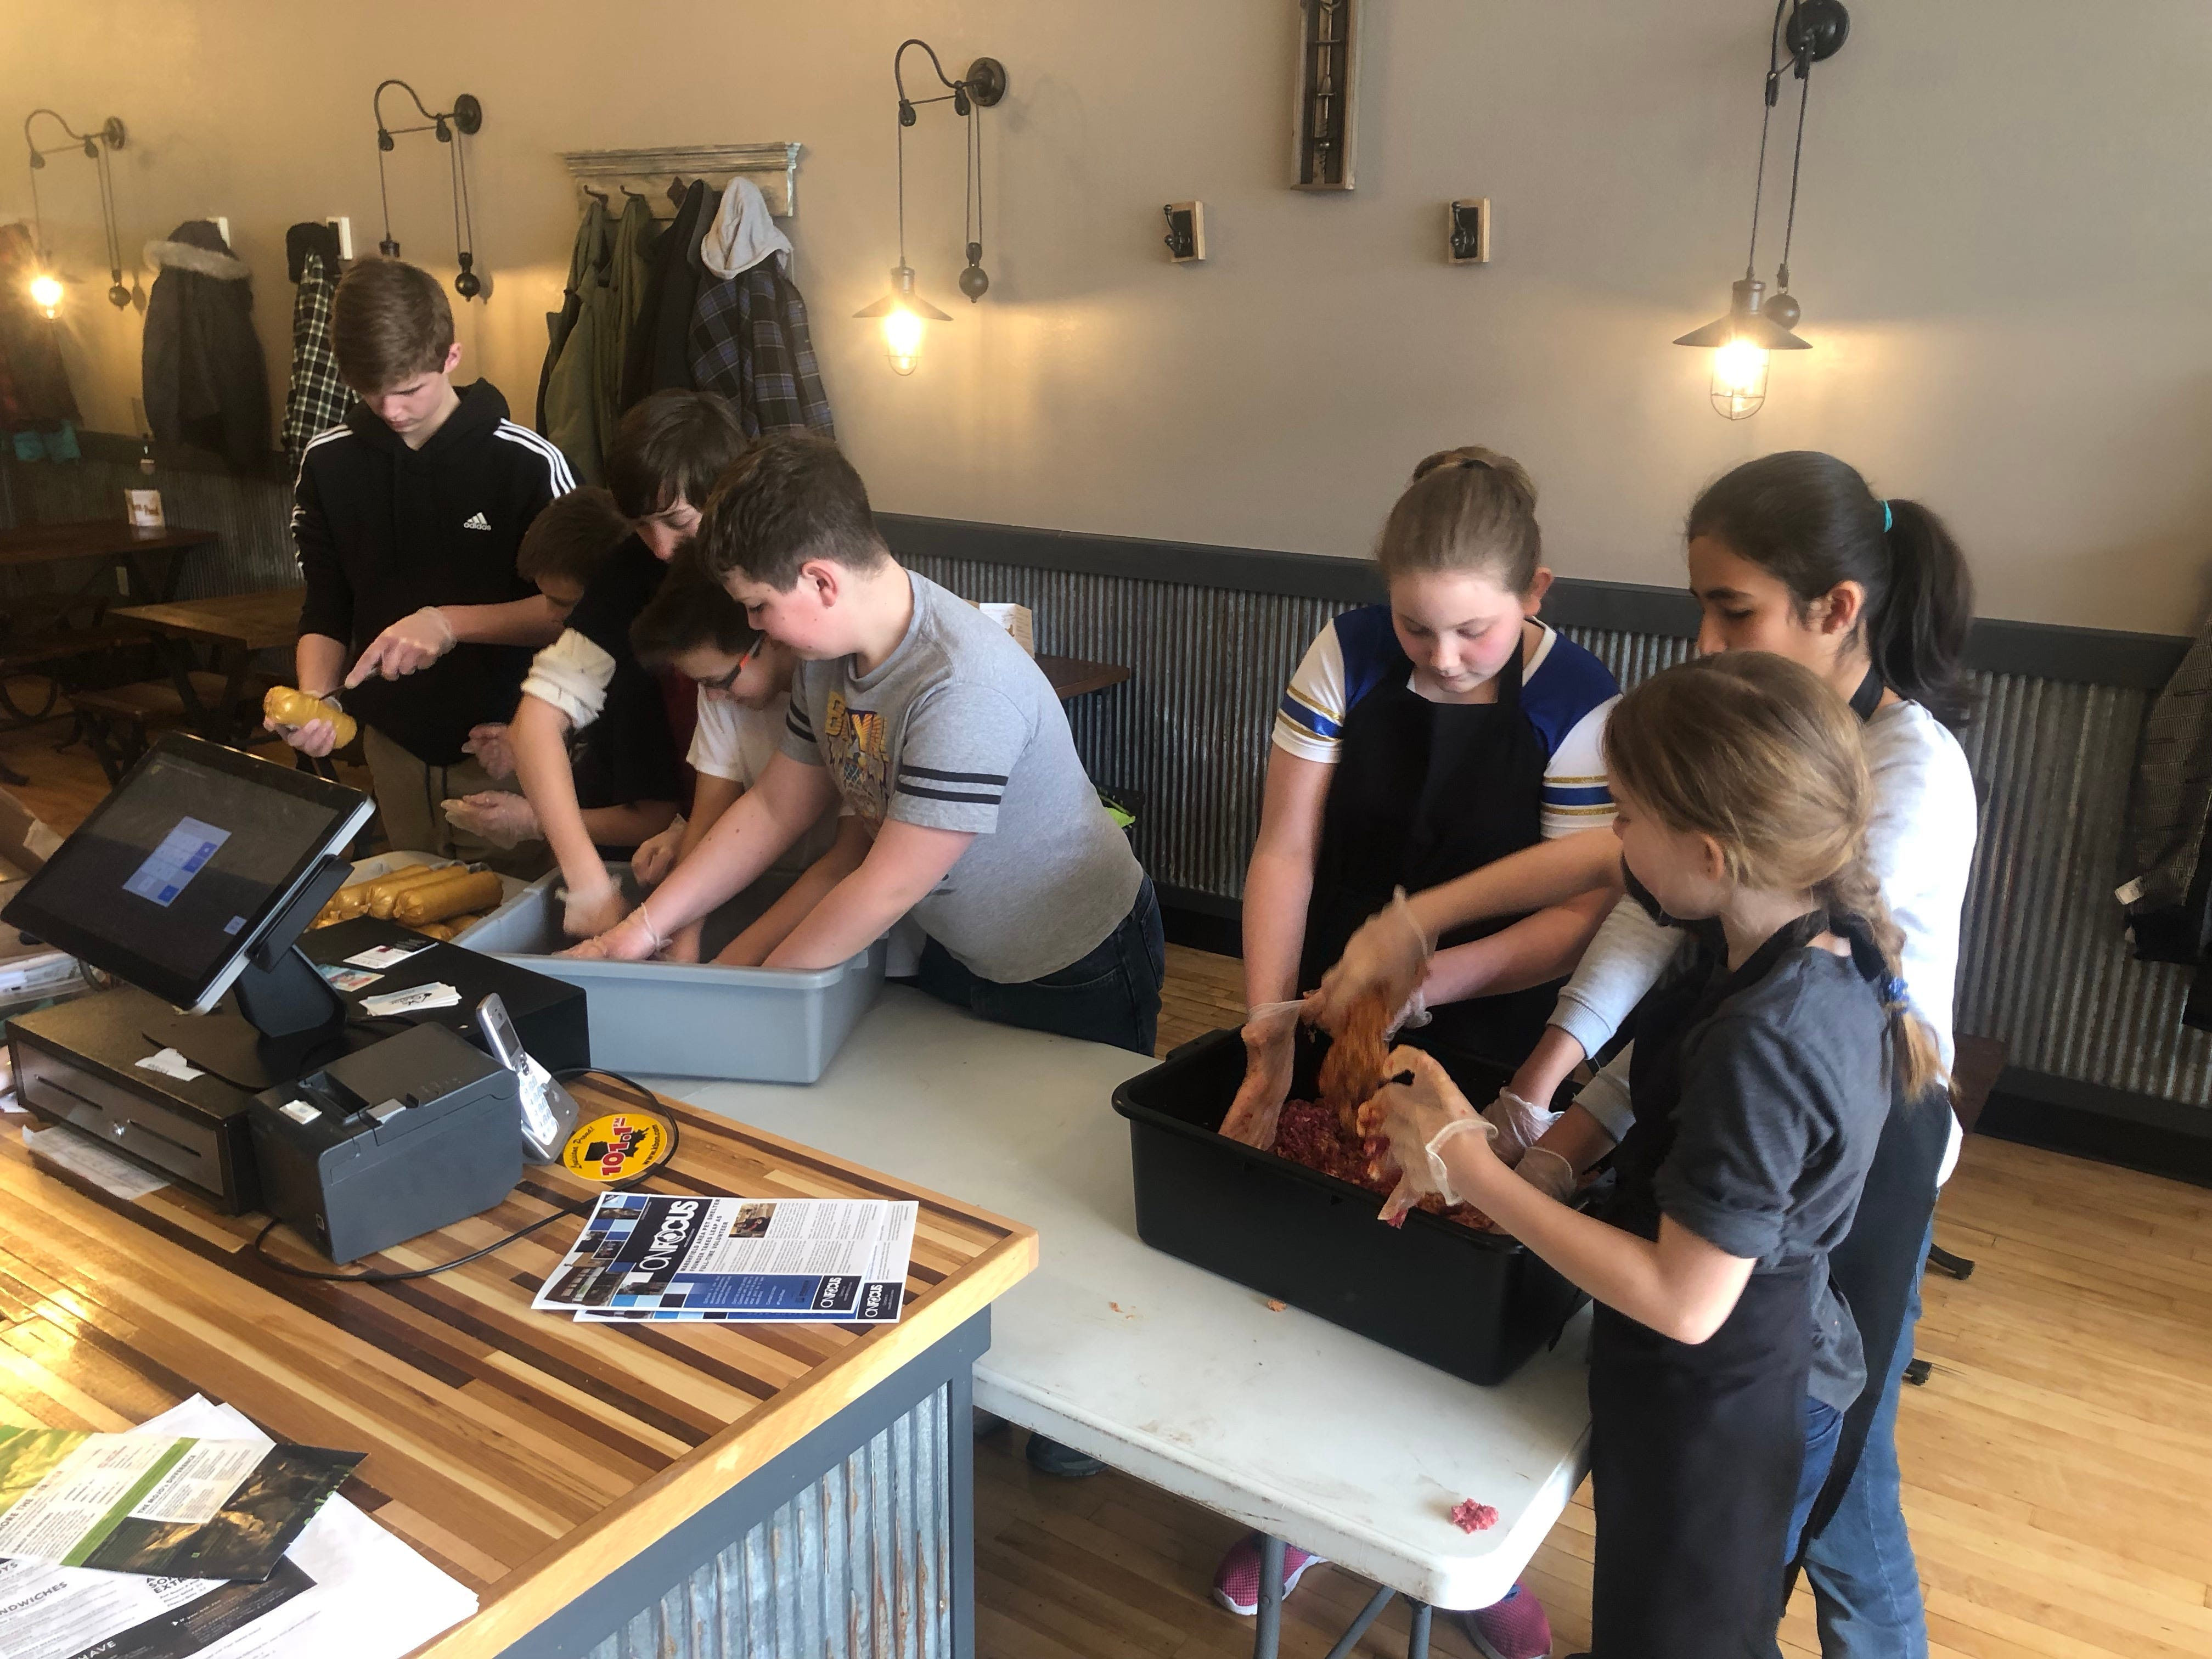 Boys and girls who are members of Marshfield Scouts BSA Troops 392 worked together to prepare a dinner of spaghetti and meatballs for police officers at MoJo's.